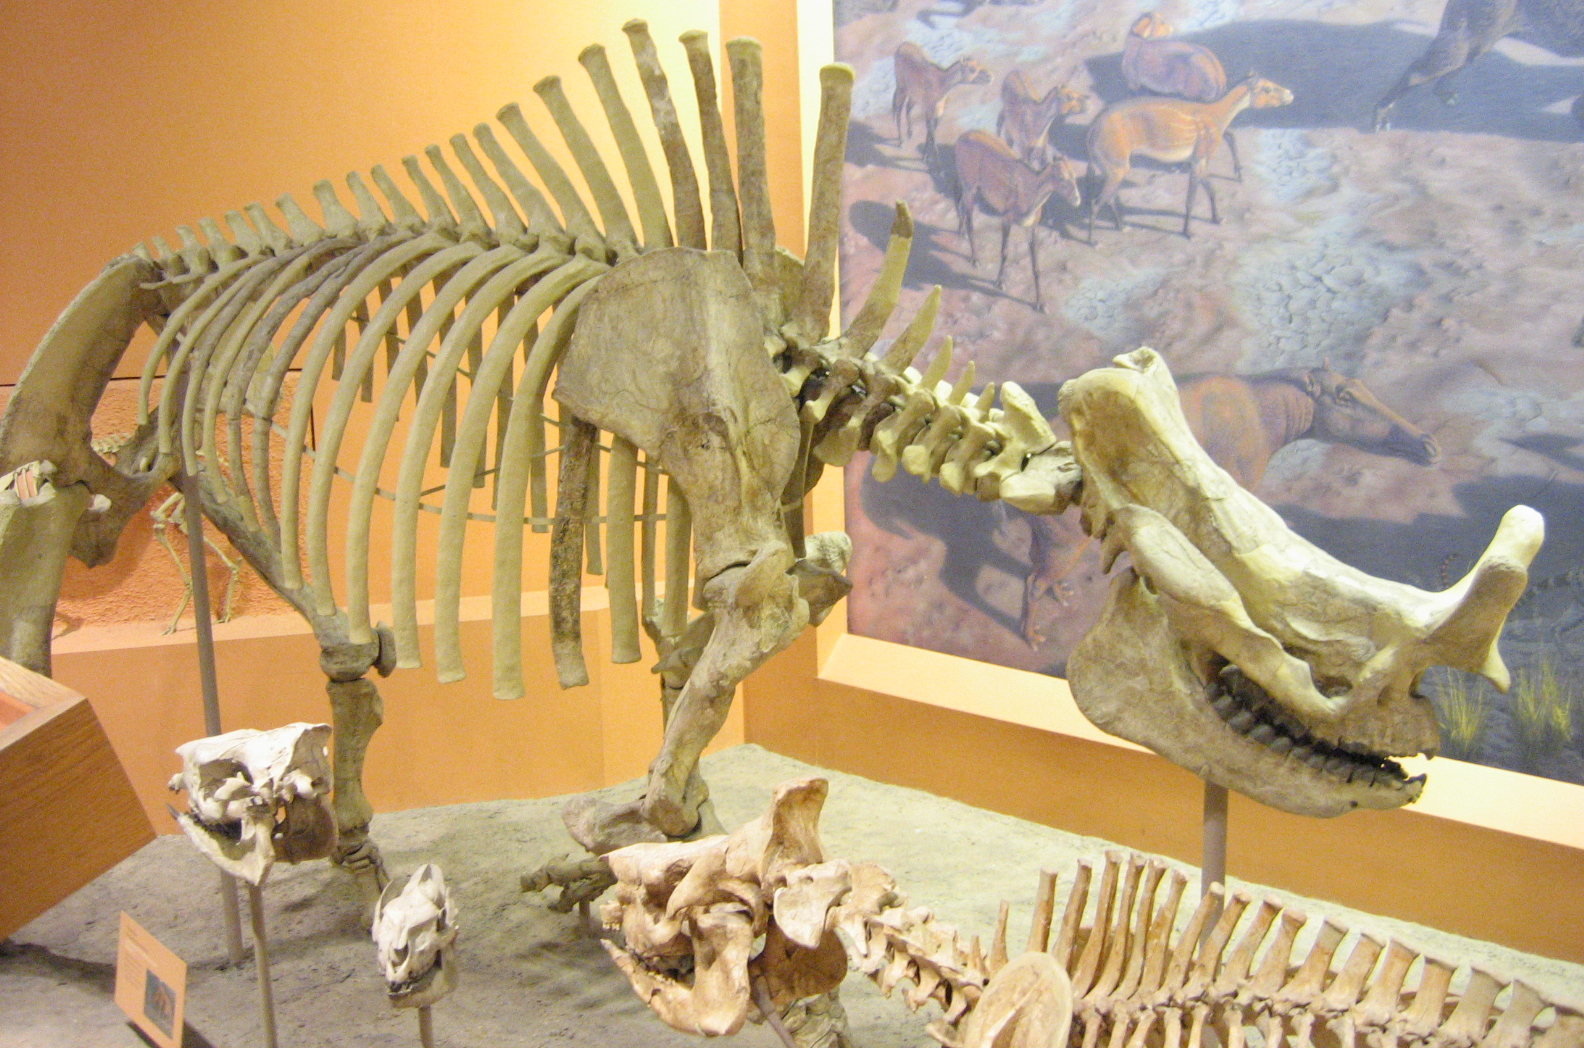 http://upload.wikimedia.org/wikipedia/commons/3/3d/Brontotherium_hatcheri.jpg